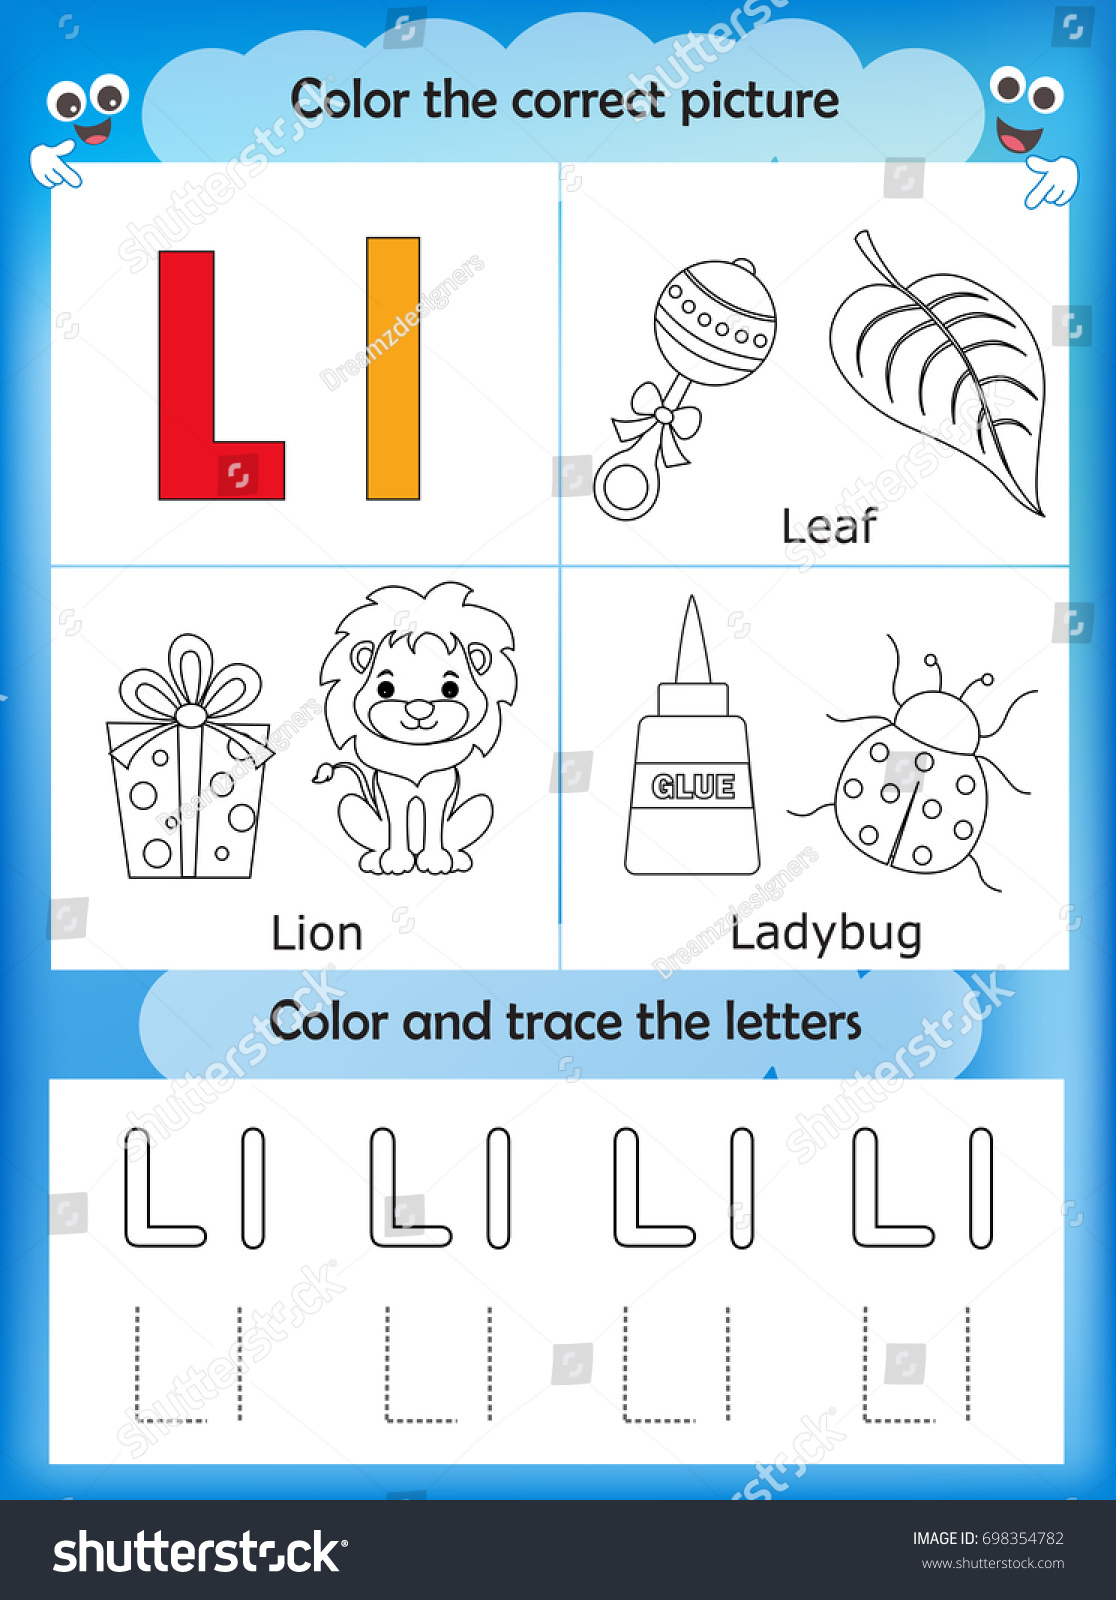 Worksheet For Preschool Letter L Ladybug Worksheet Best